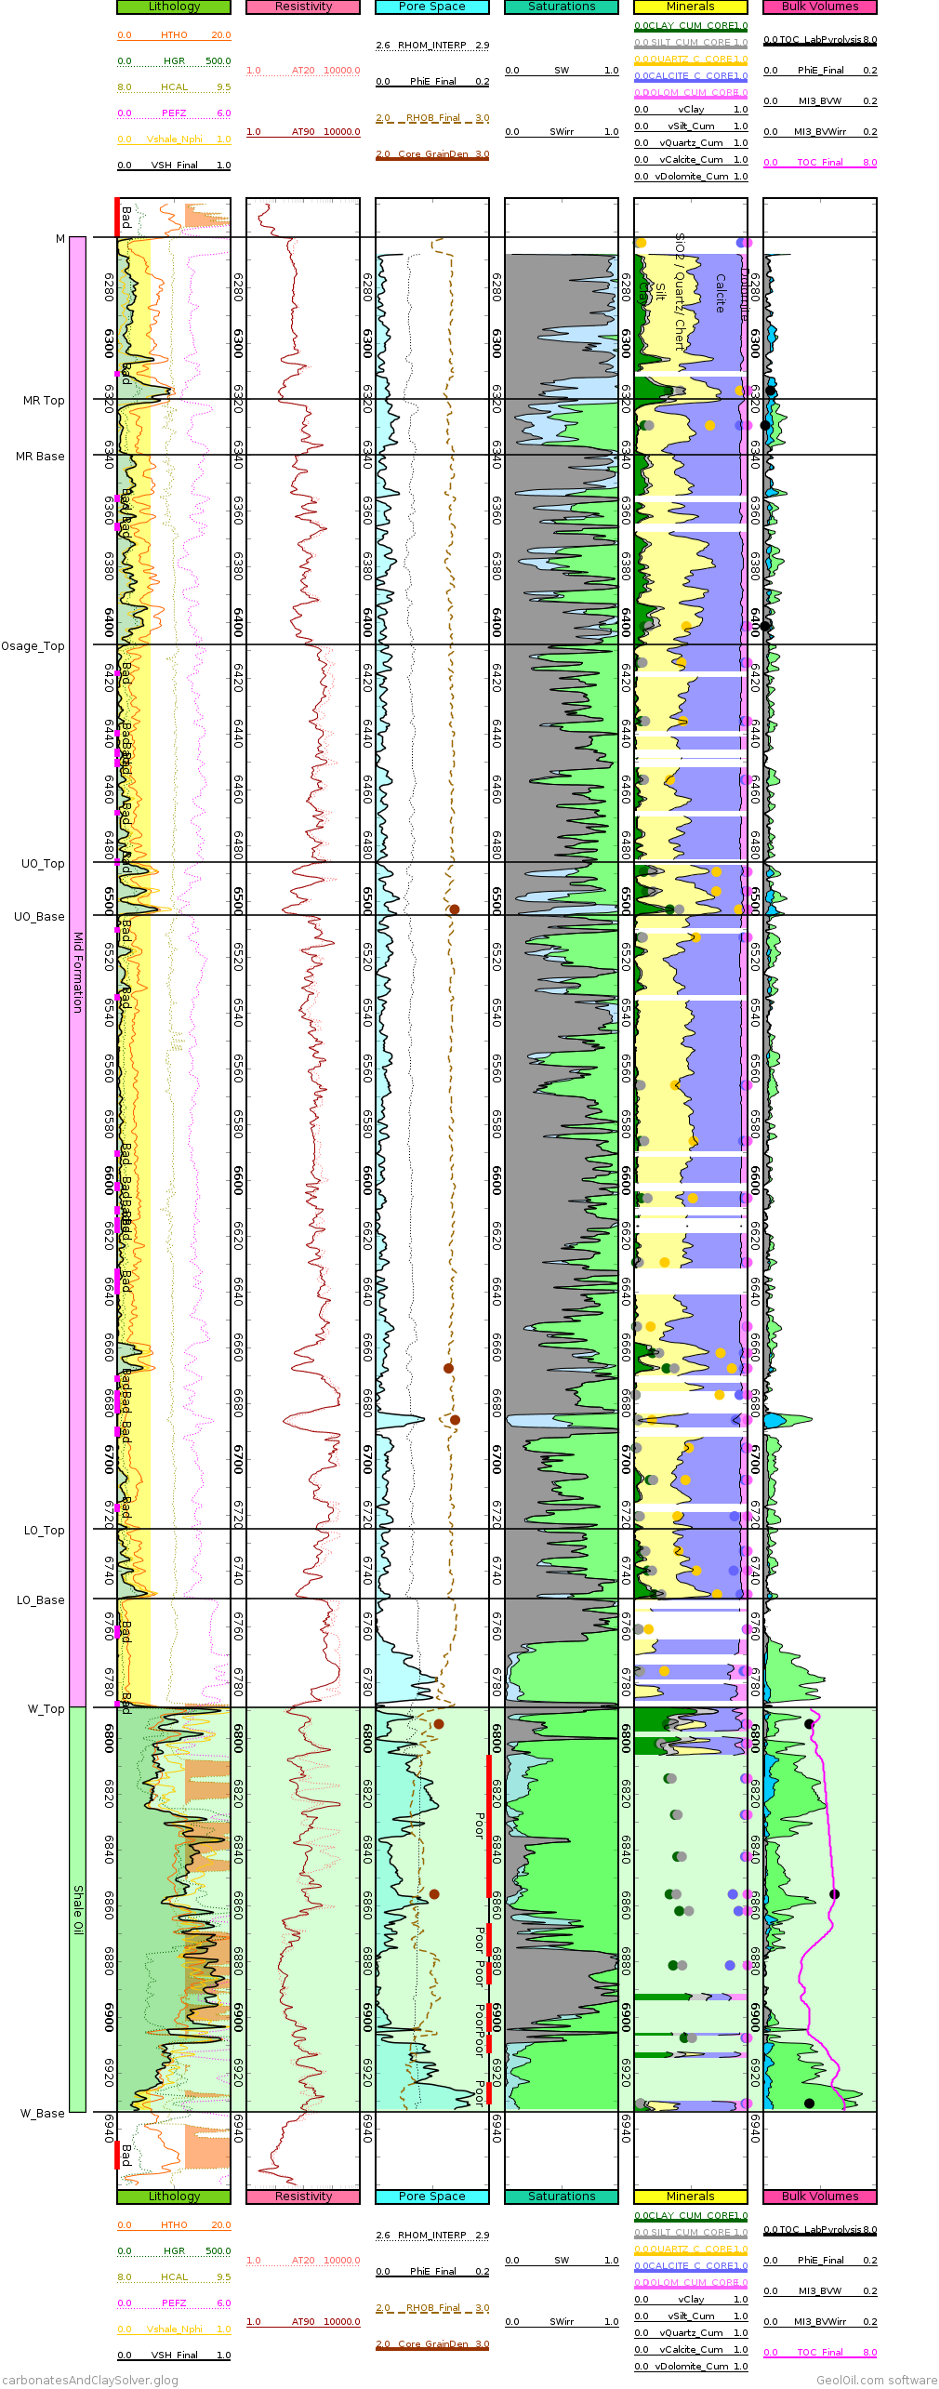 Mineral solved log plot for clays, silt, quartz, calcite, and dolomite